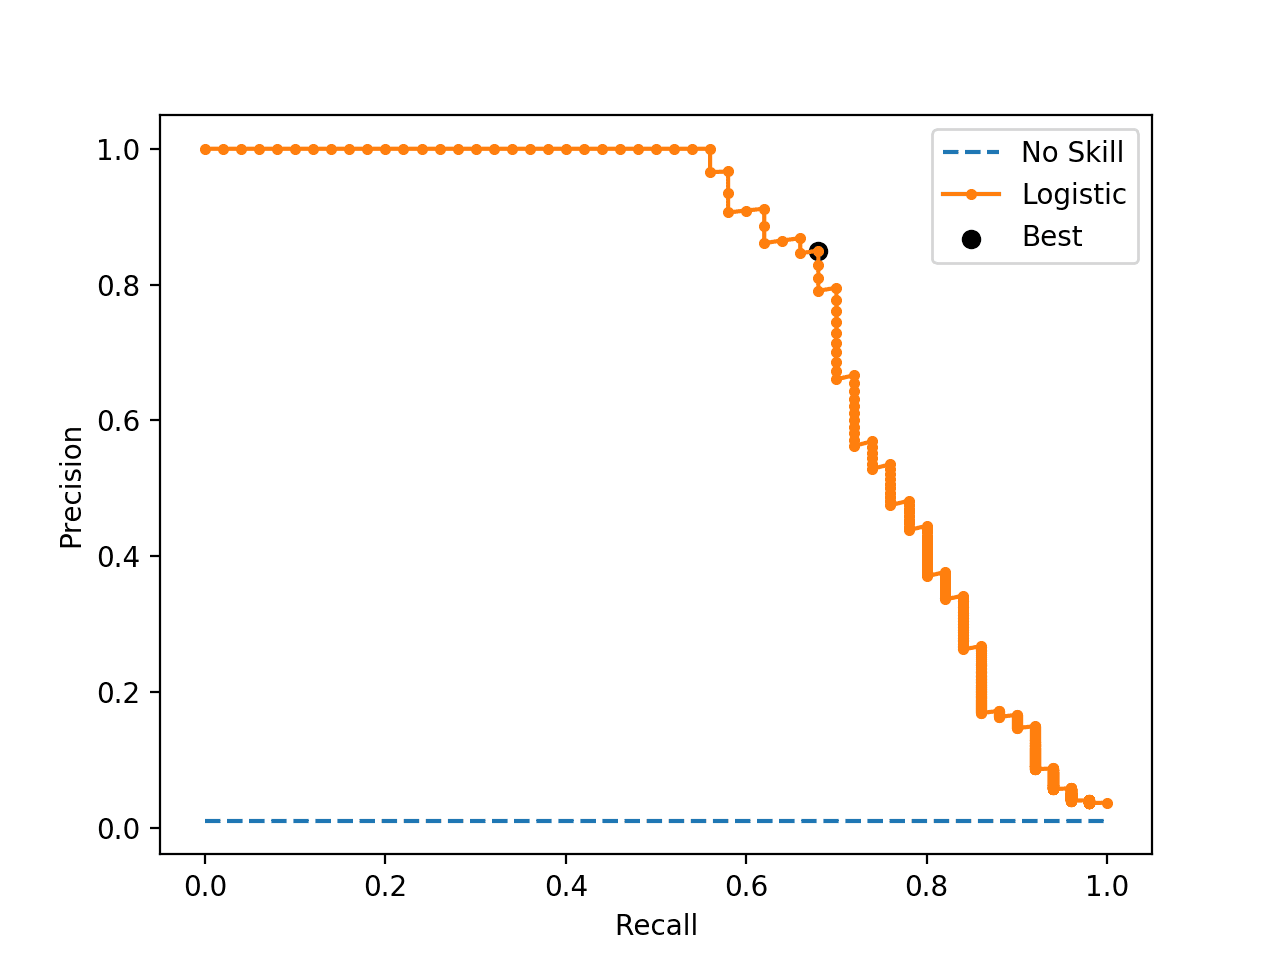 Precision-Recall Curve Line Plot for Logistic Regression Model With Optimal Threshold